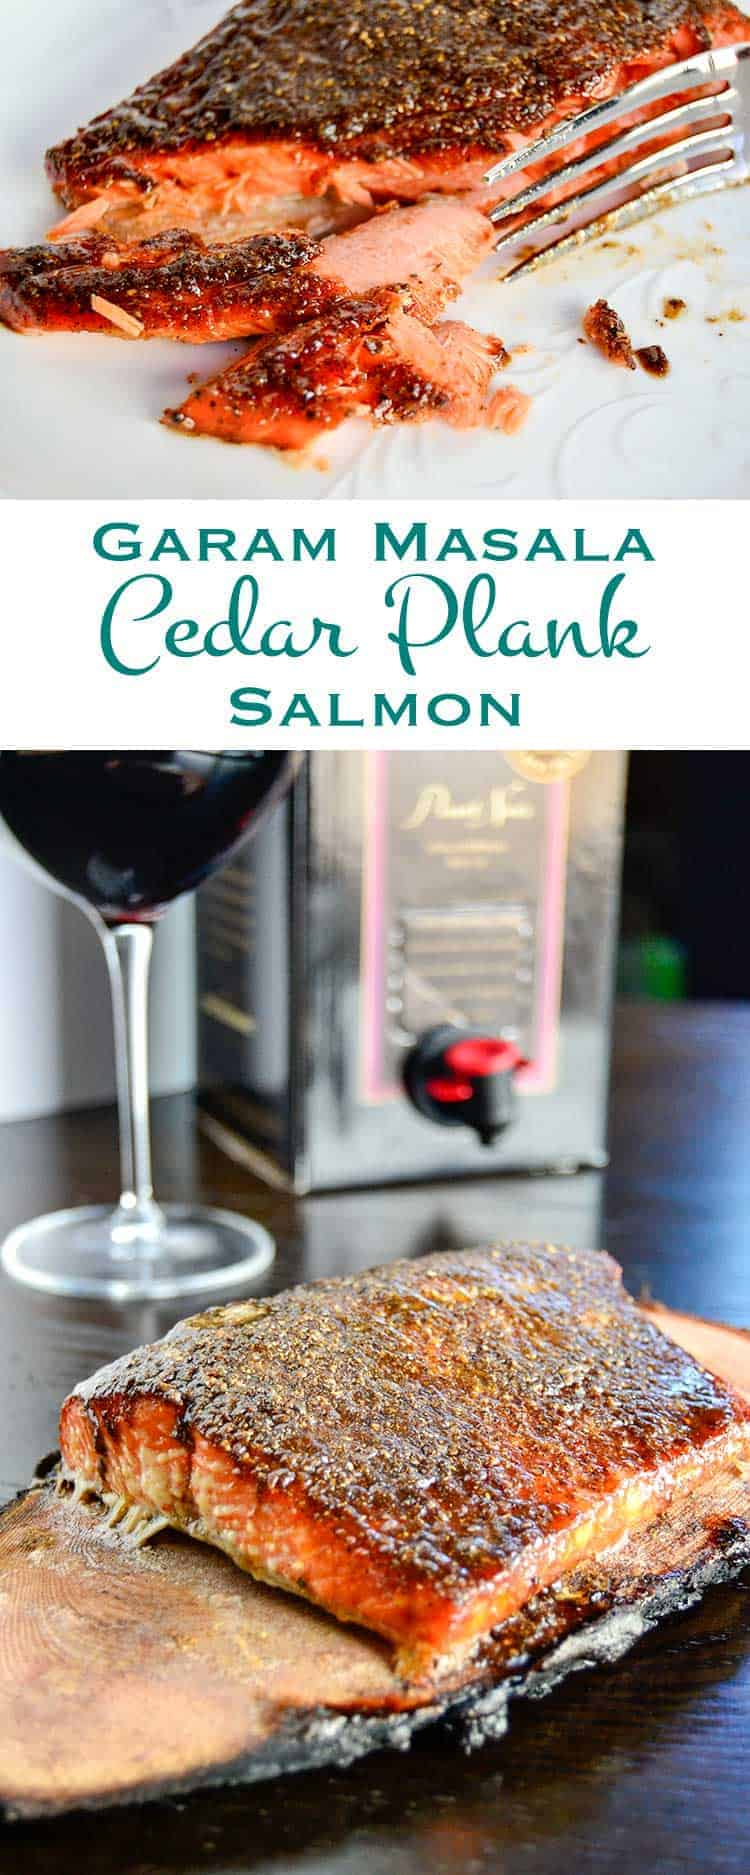 Crusted with brown sugar and spices then grilled on a wine soaked cedar plank, this garam masala cedar plank salmon is smoky sweet and sure to please.